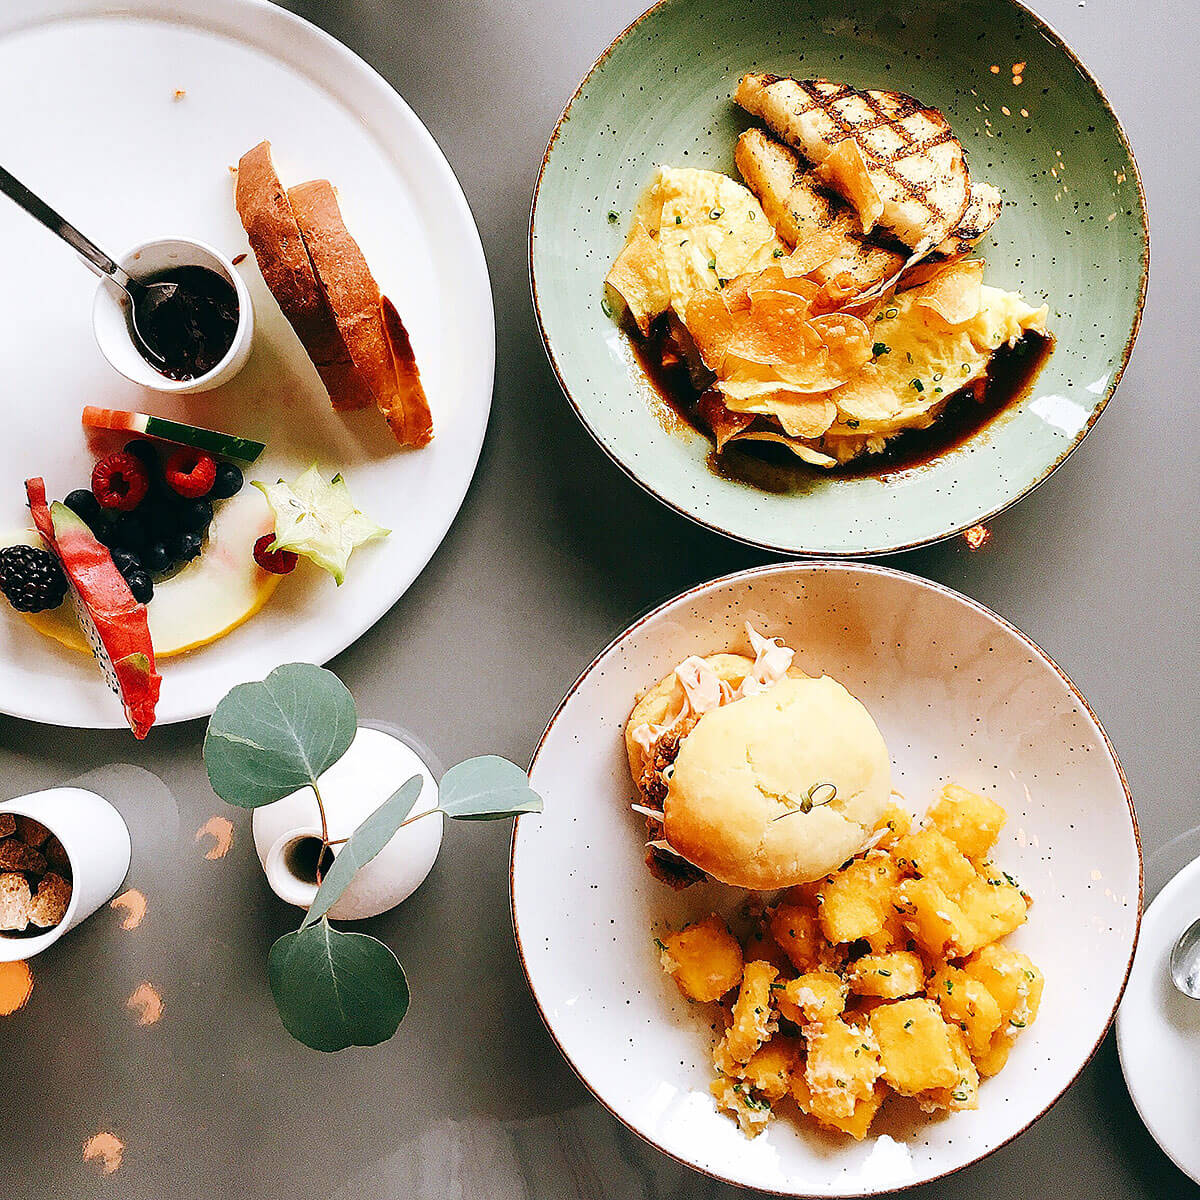 hopkins-brunch-monkland-montreal © Will Travel for Food